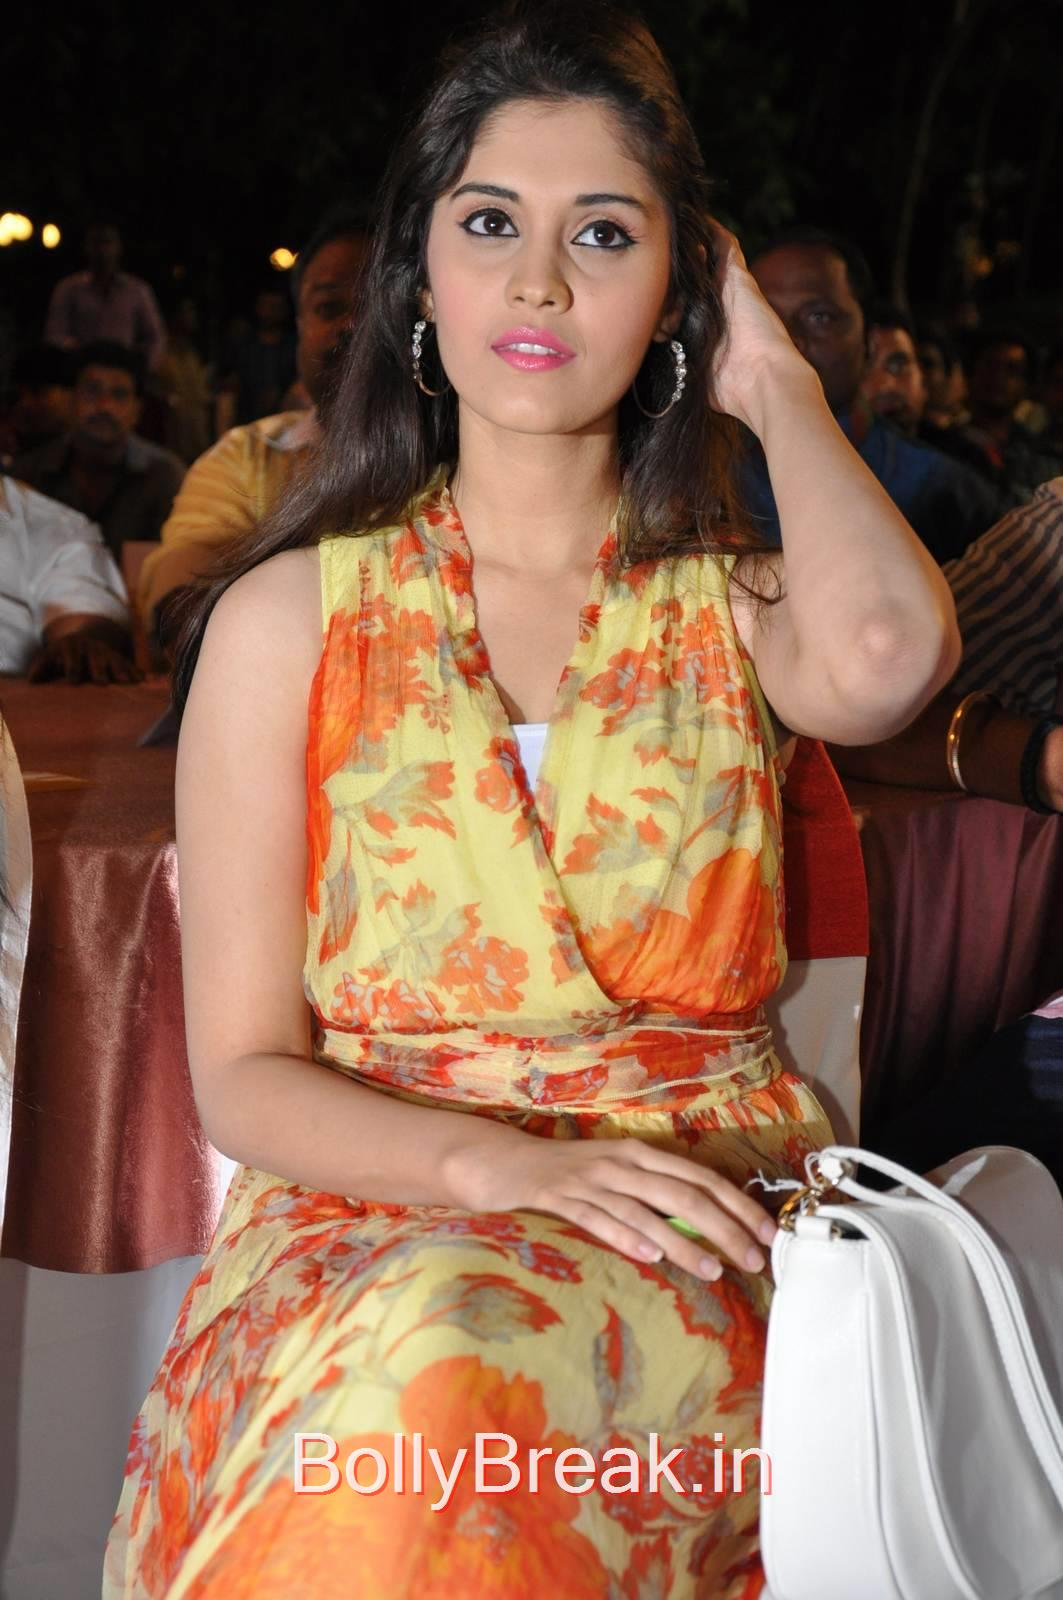 Surabhi Stills, Actress Surabhi Hot Photo gallery from an event